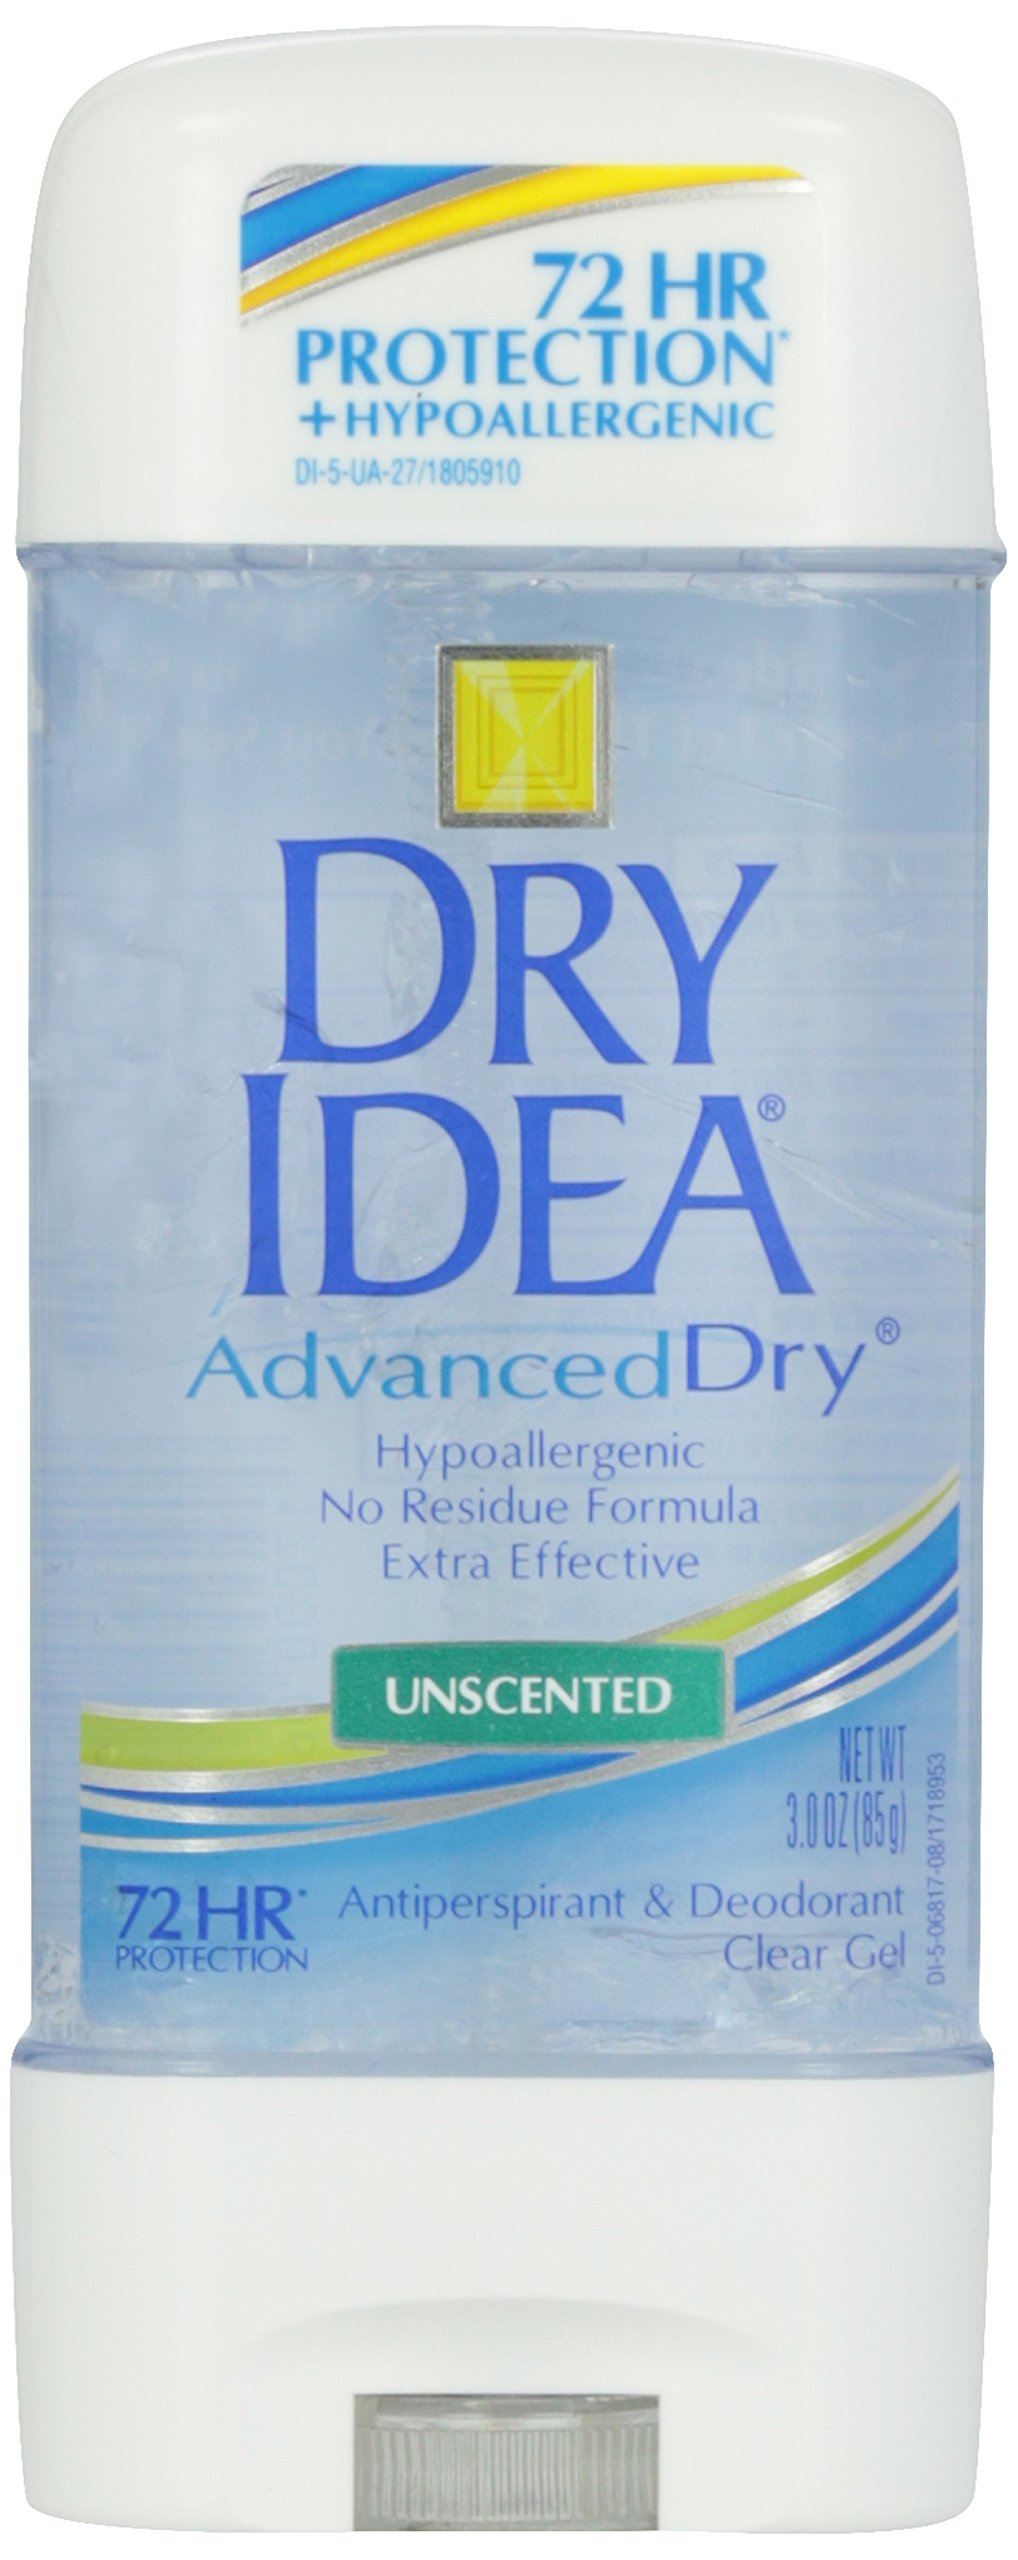 Dial Dry Idea Anti-Perspirant and